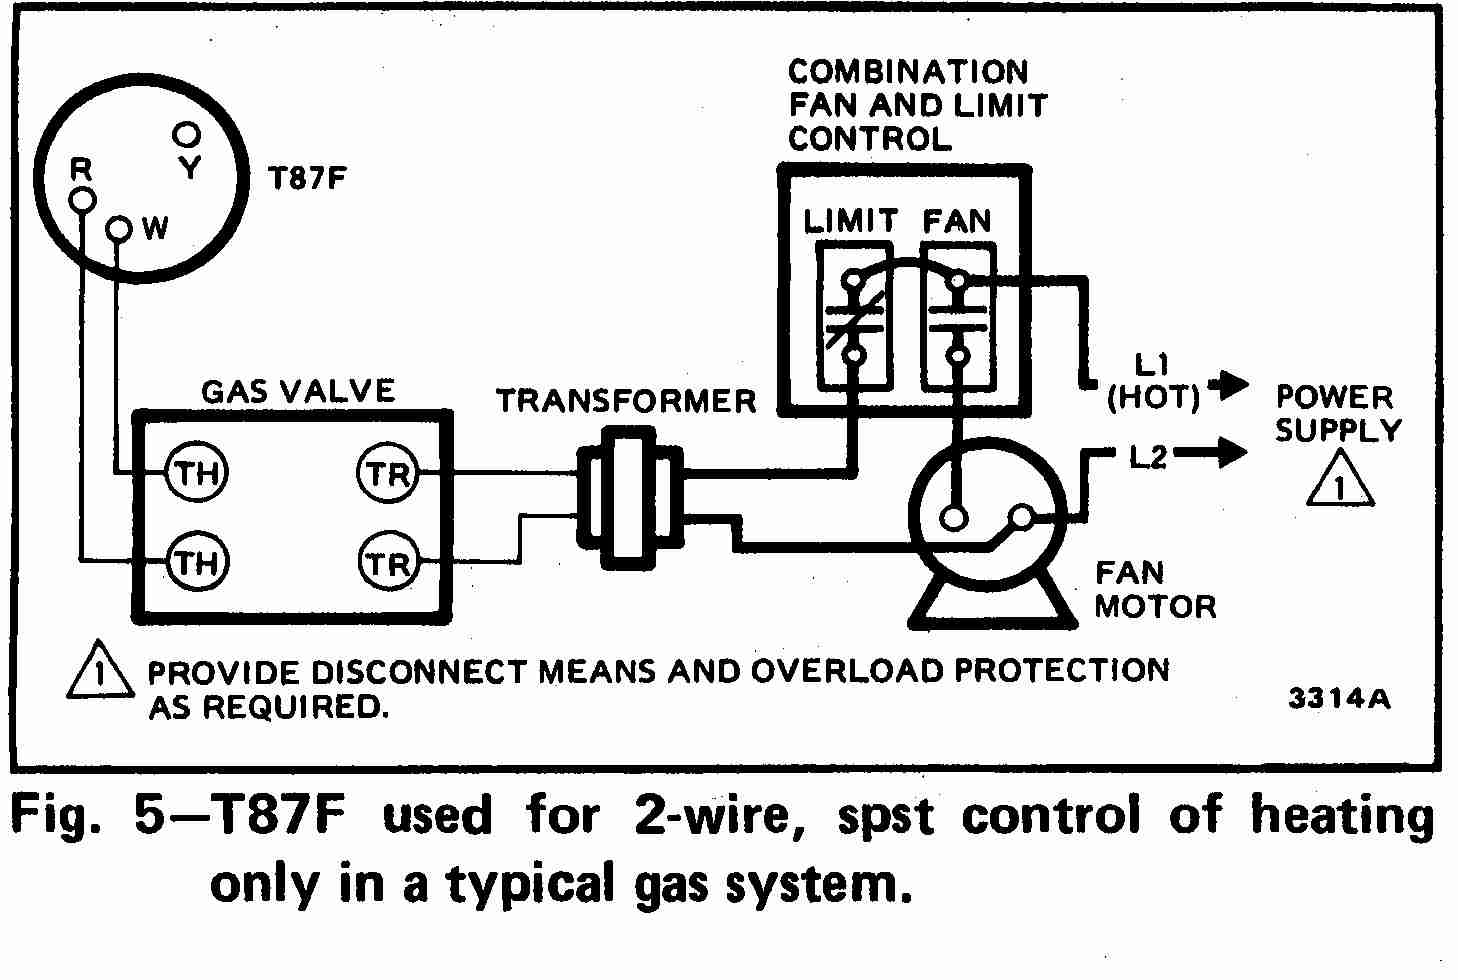 TT_T87F_0002_2Wg_DJF guide to wiring connections for room thermostats honeywell thermostat wiring diagram 4 wire at gsmx.co